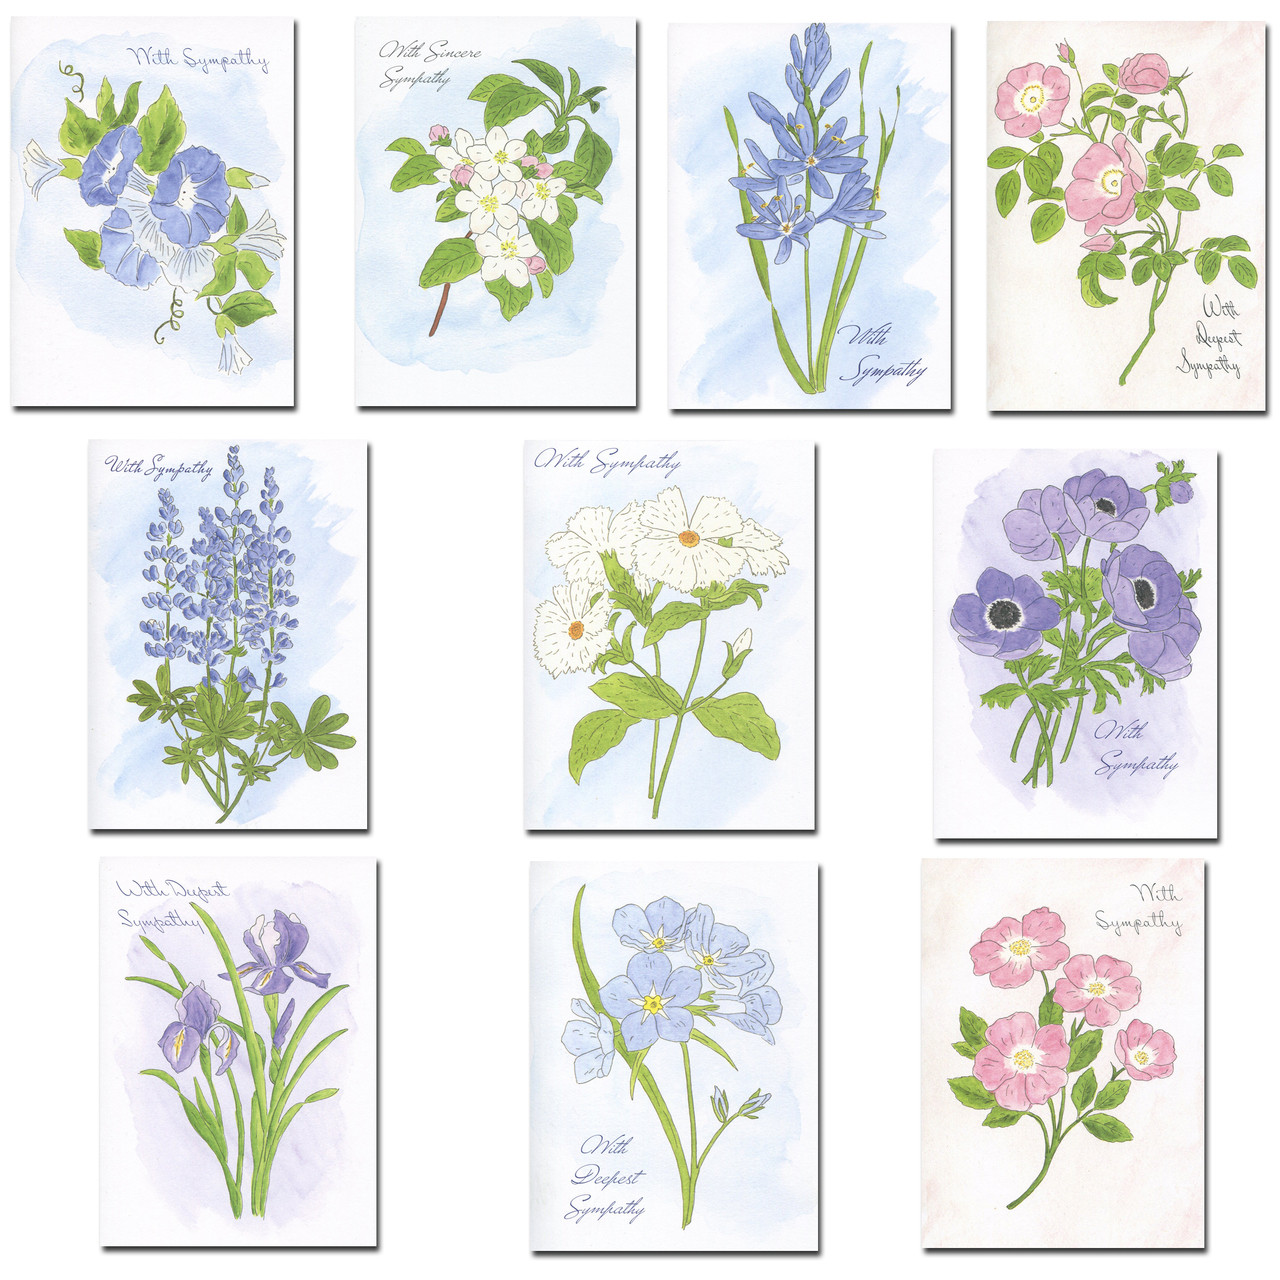 Sympathy Card Assortment: Watercolor Florals, three each of 10 different hand-painted watercolor floral designs